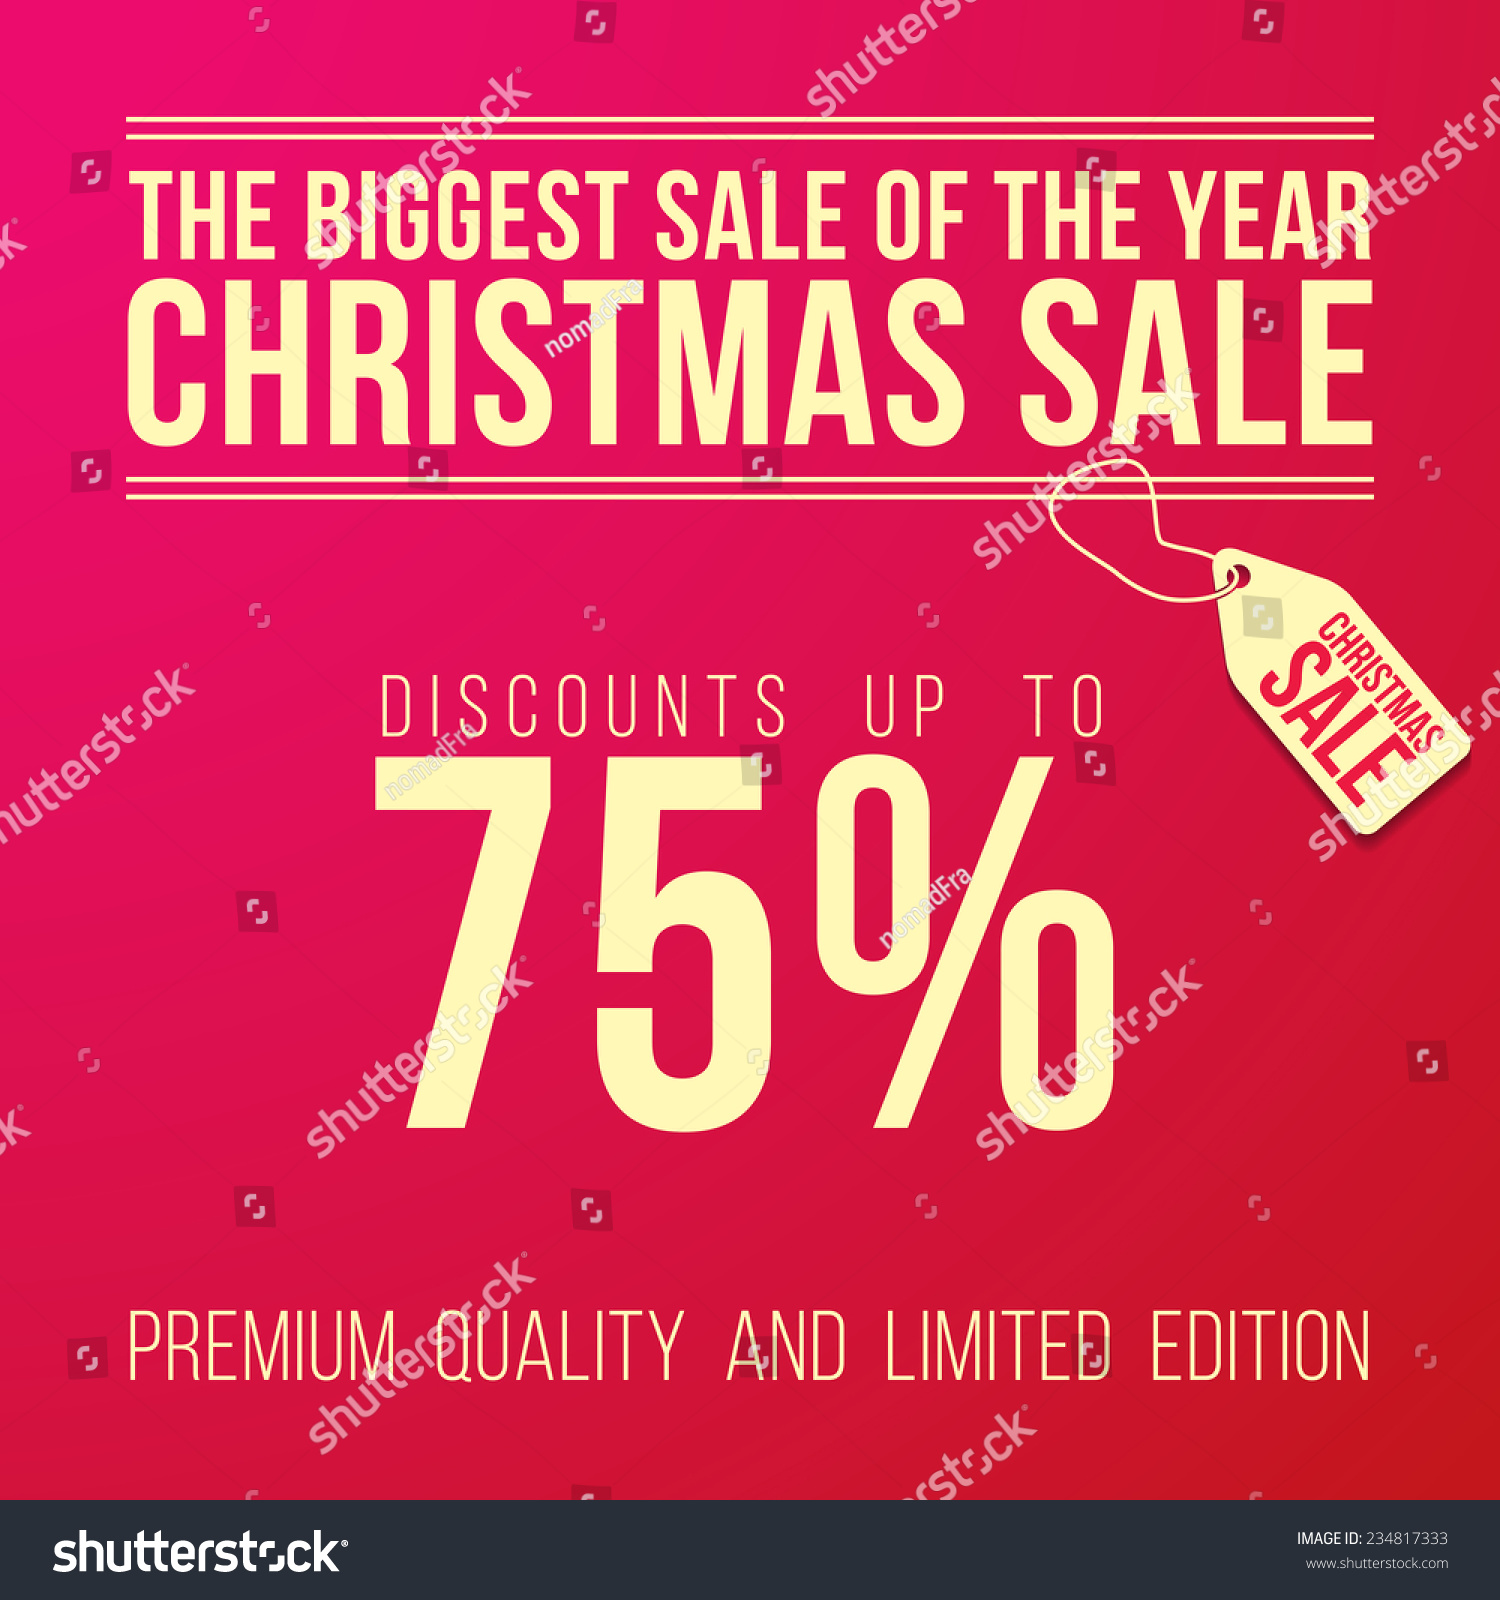 Christmas Sale Ad With Big Discount Designed In A Modern Flat Style On Red Background